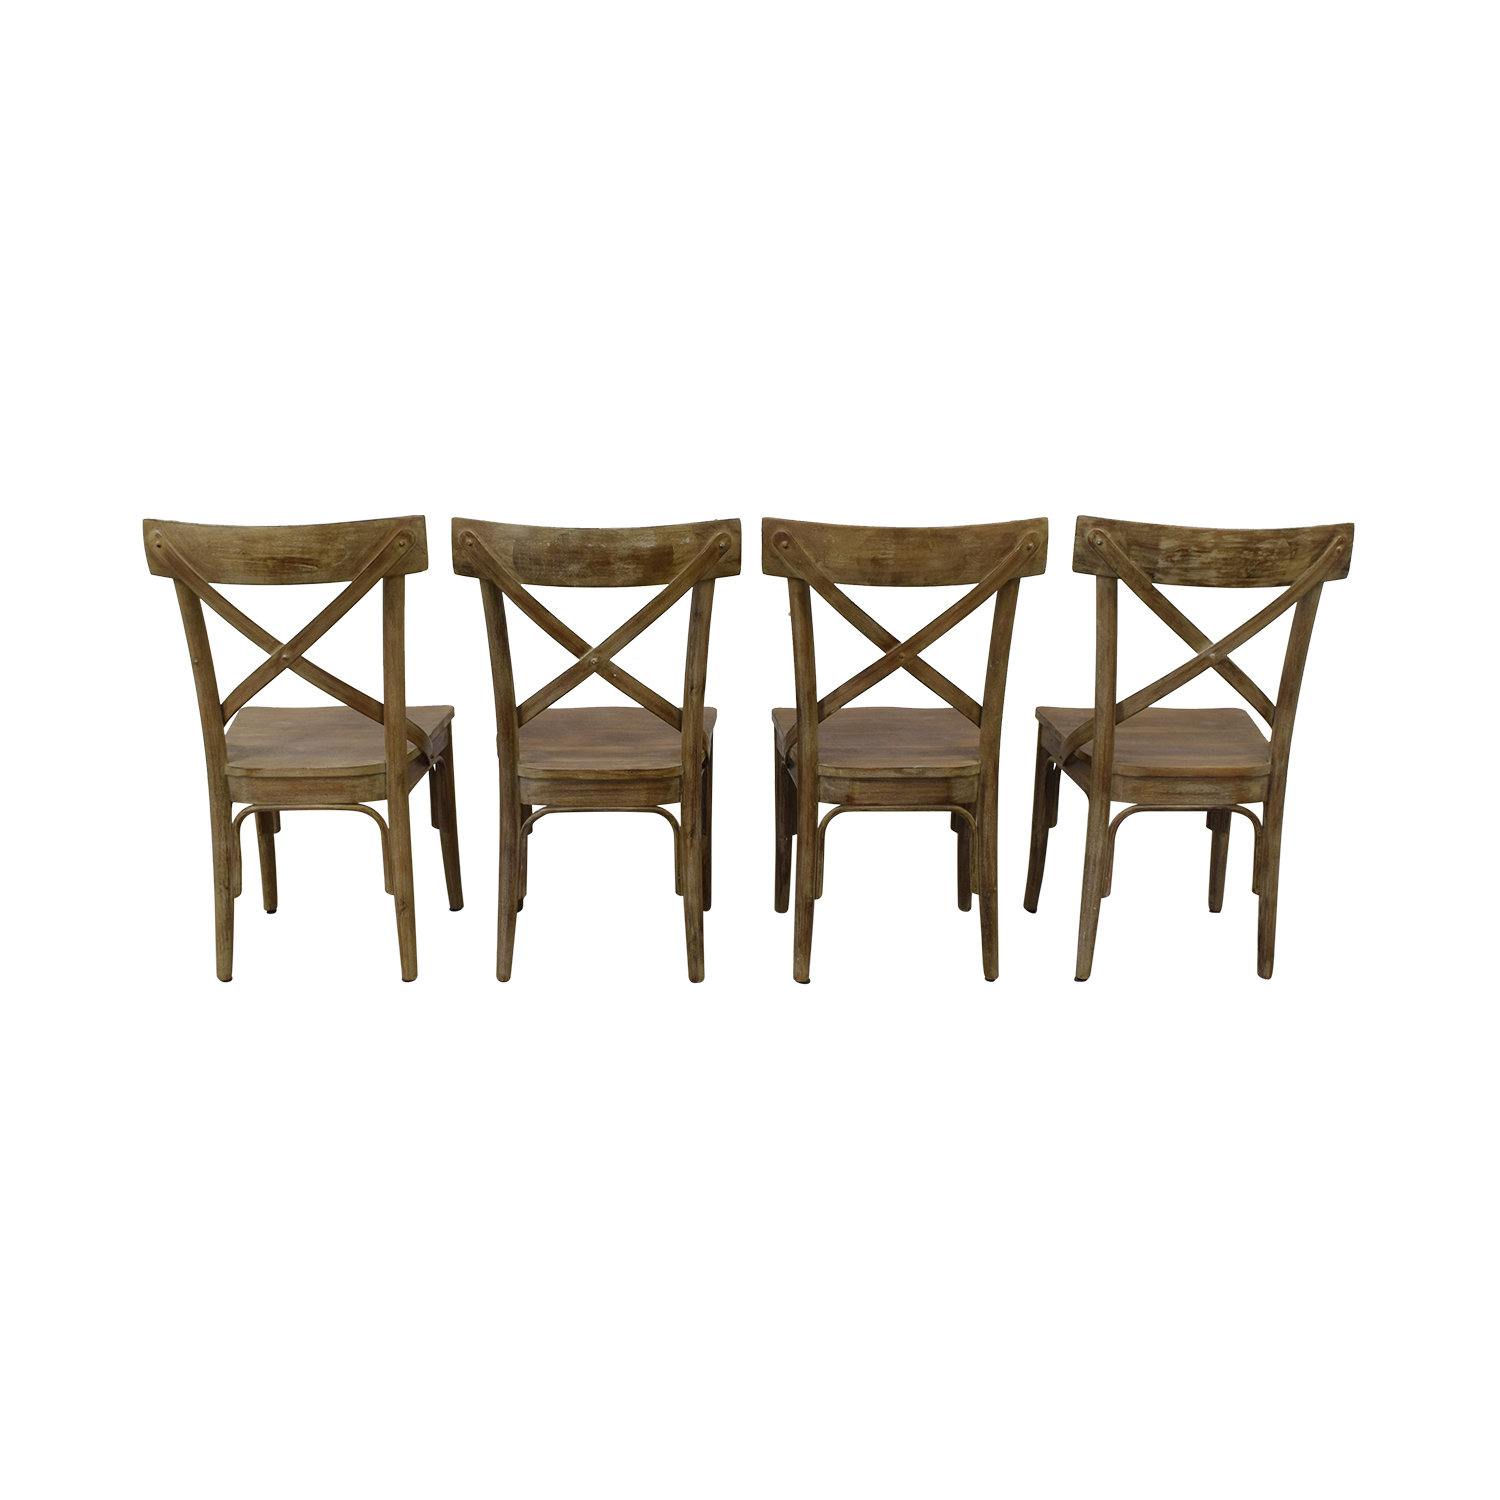 Cost Plus World Market World Market Dining Chairs used